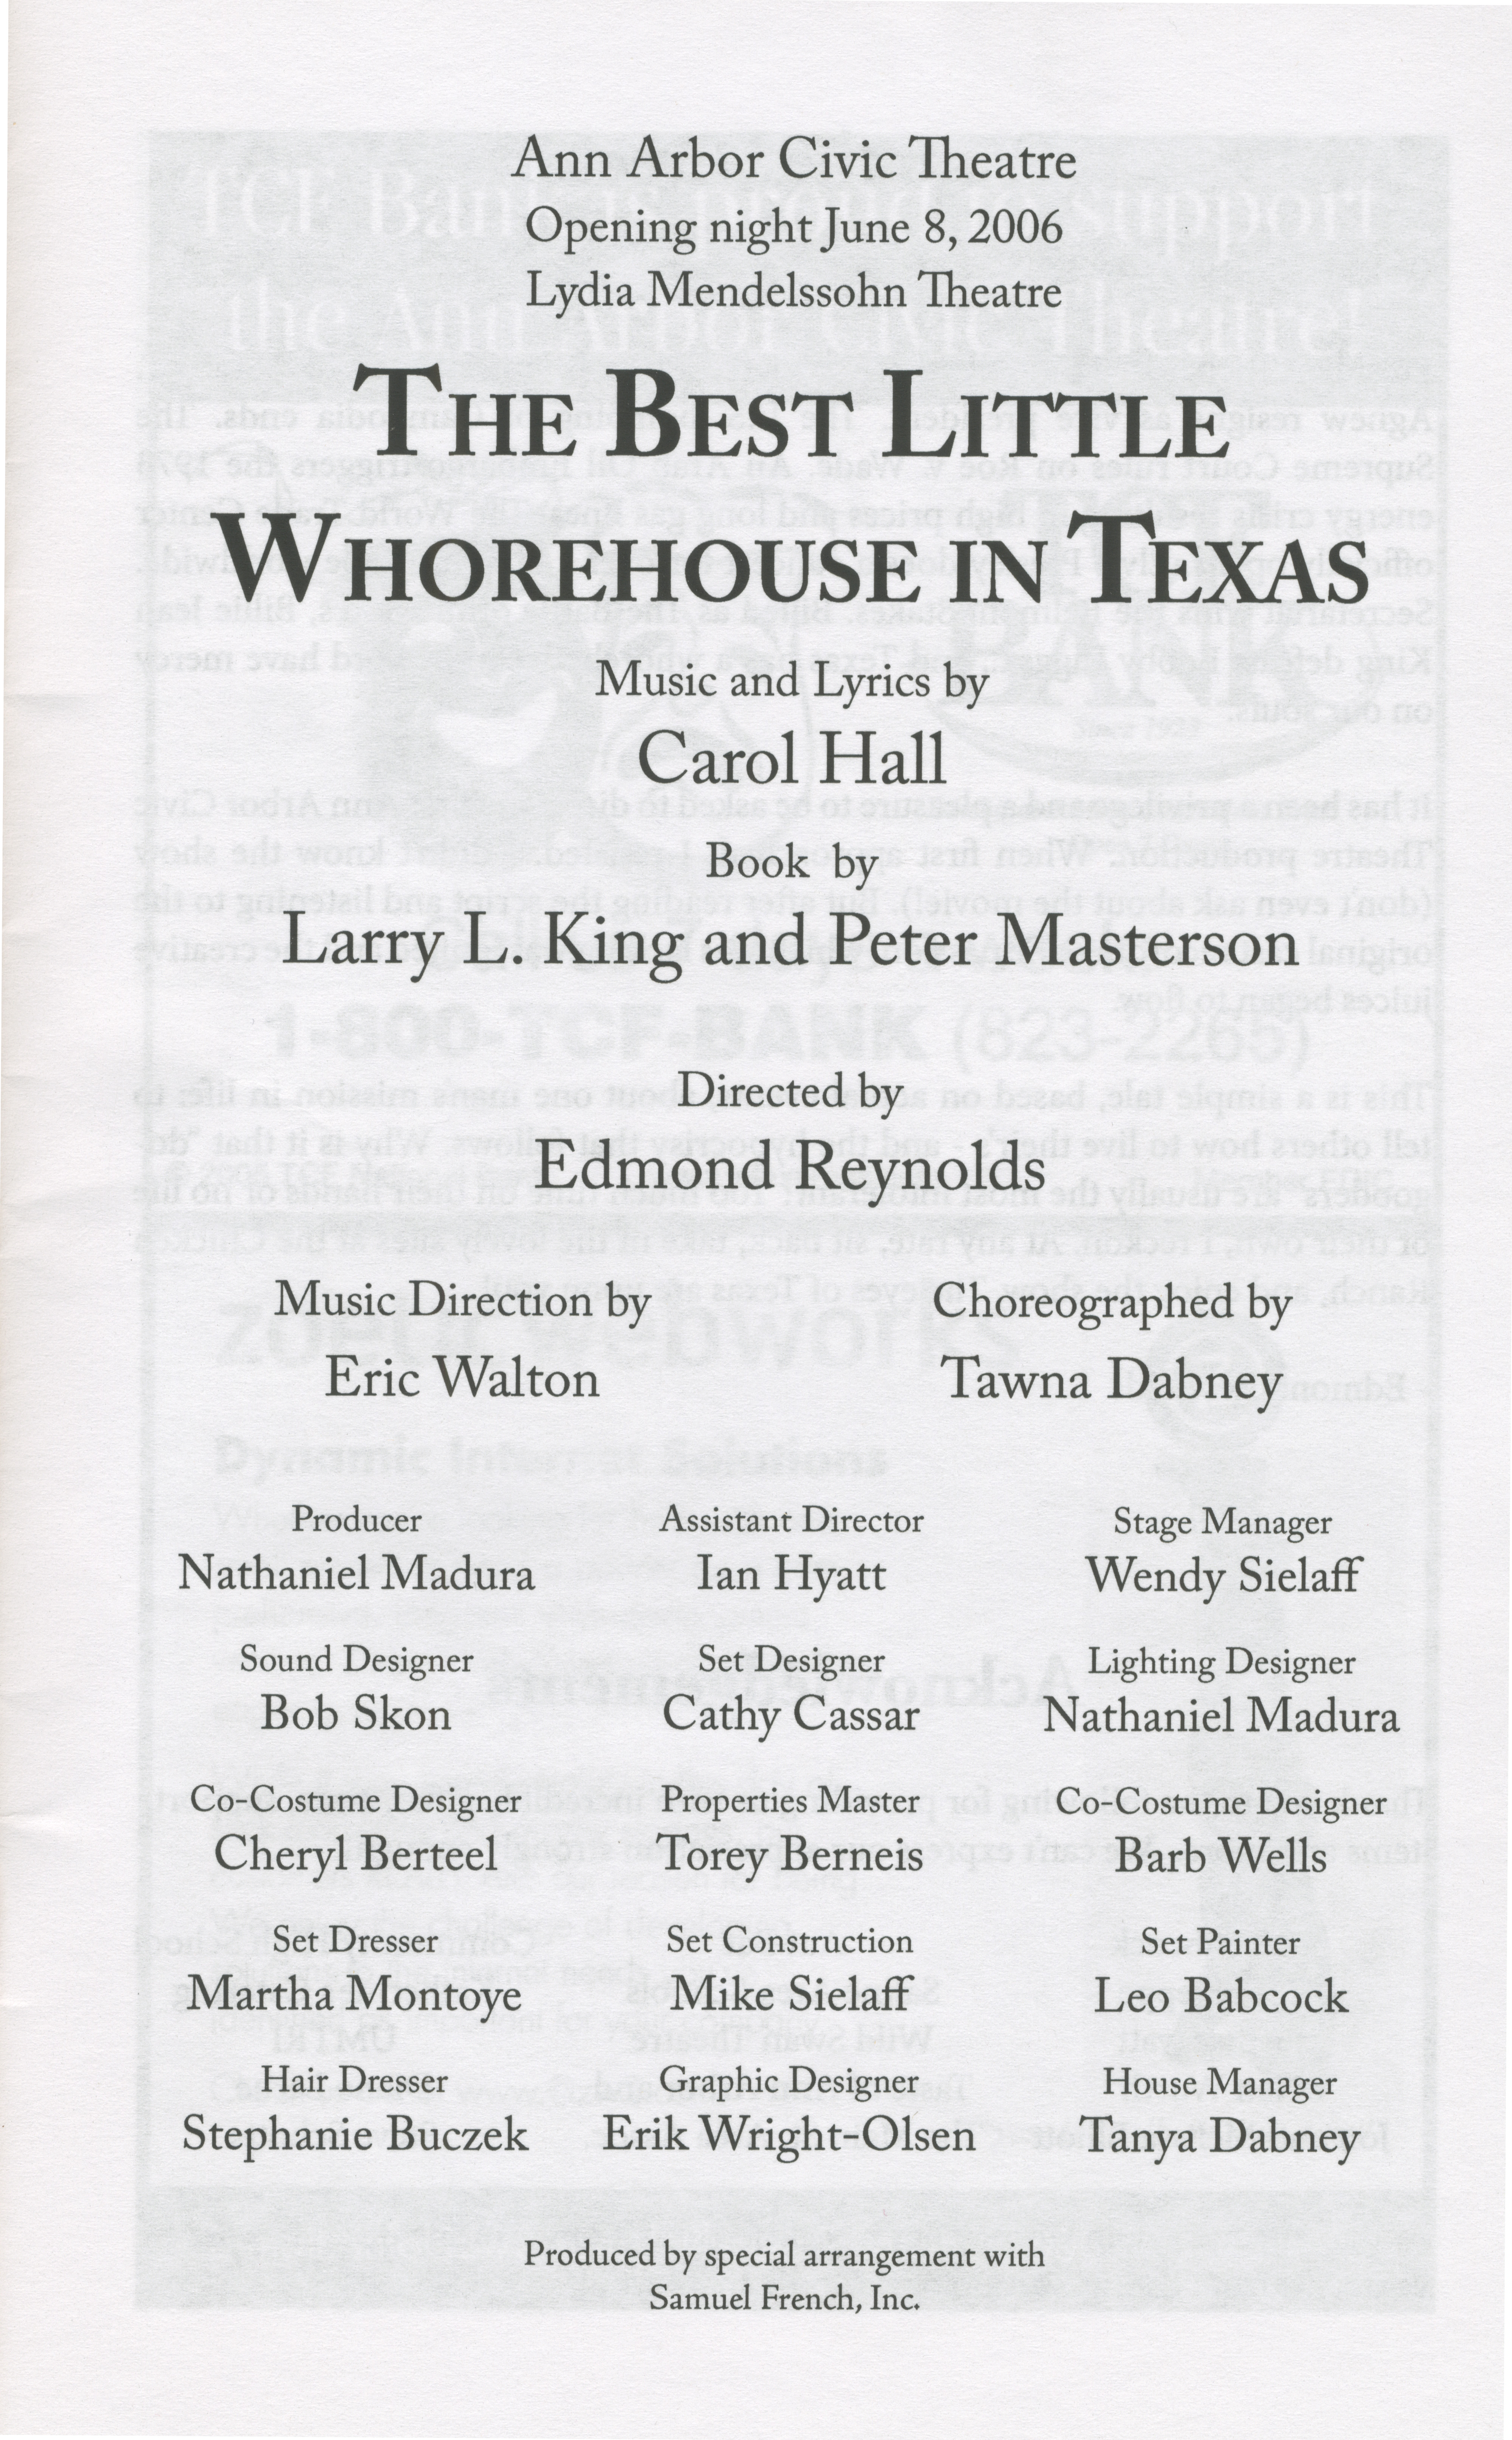 Ann Arbor Civic Theatre Program: The Best Little Whorehouse in Texas, June 08, 2006 image